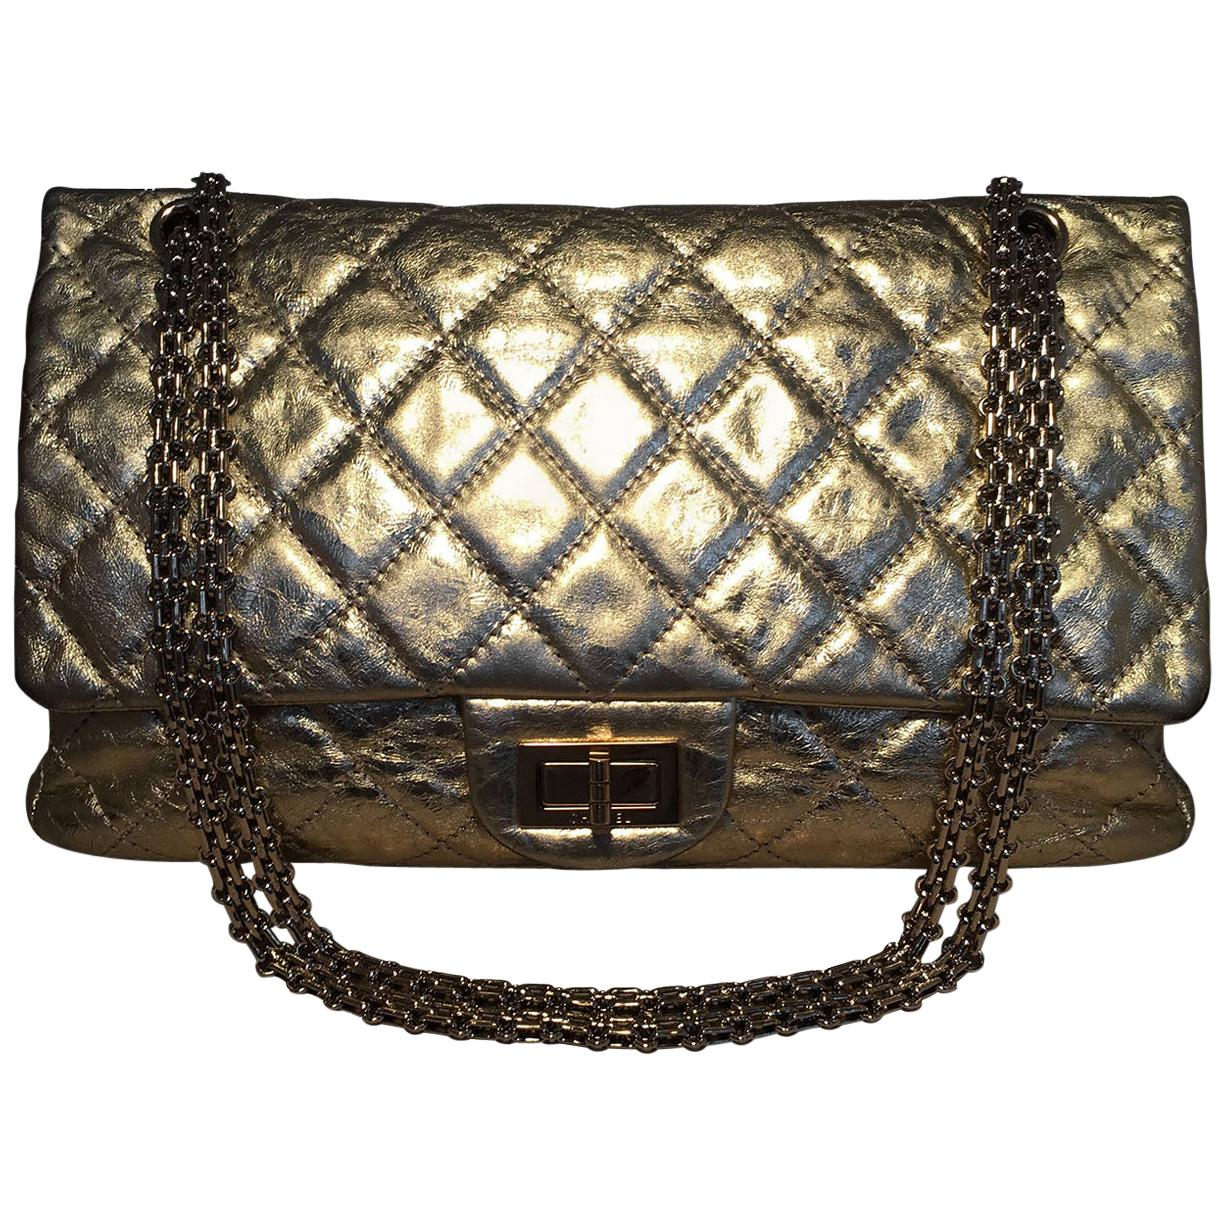 Chanel Gold Distressed Leather 2.55 Reissue 227 Double Flap Classic